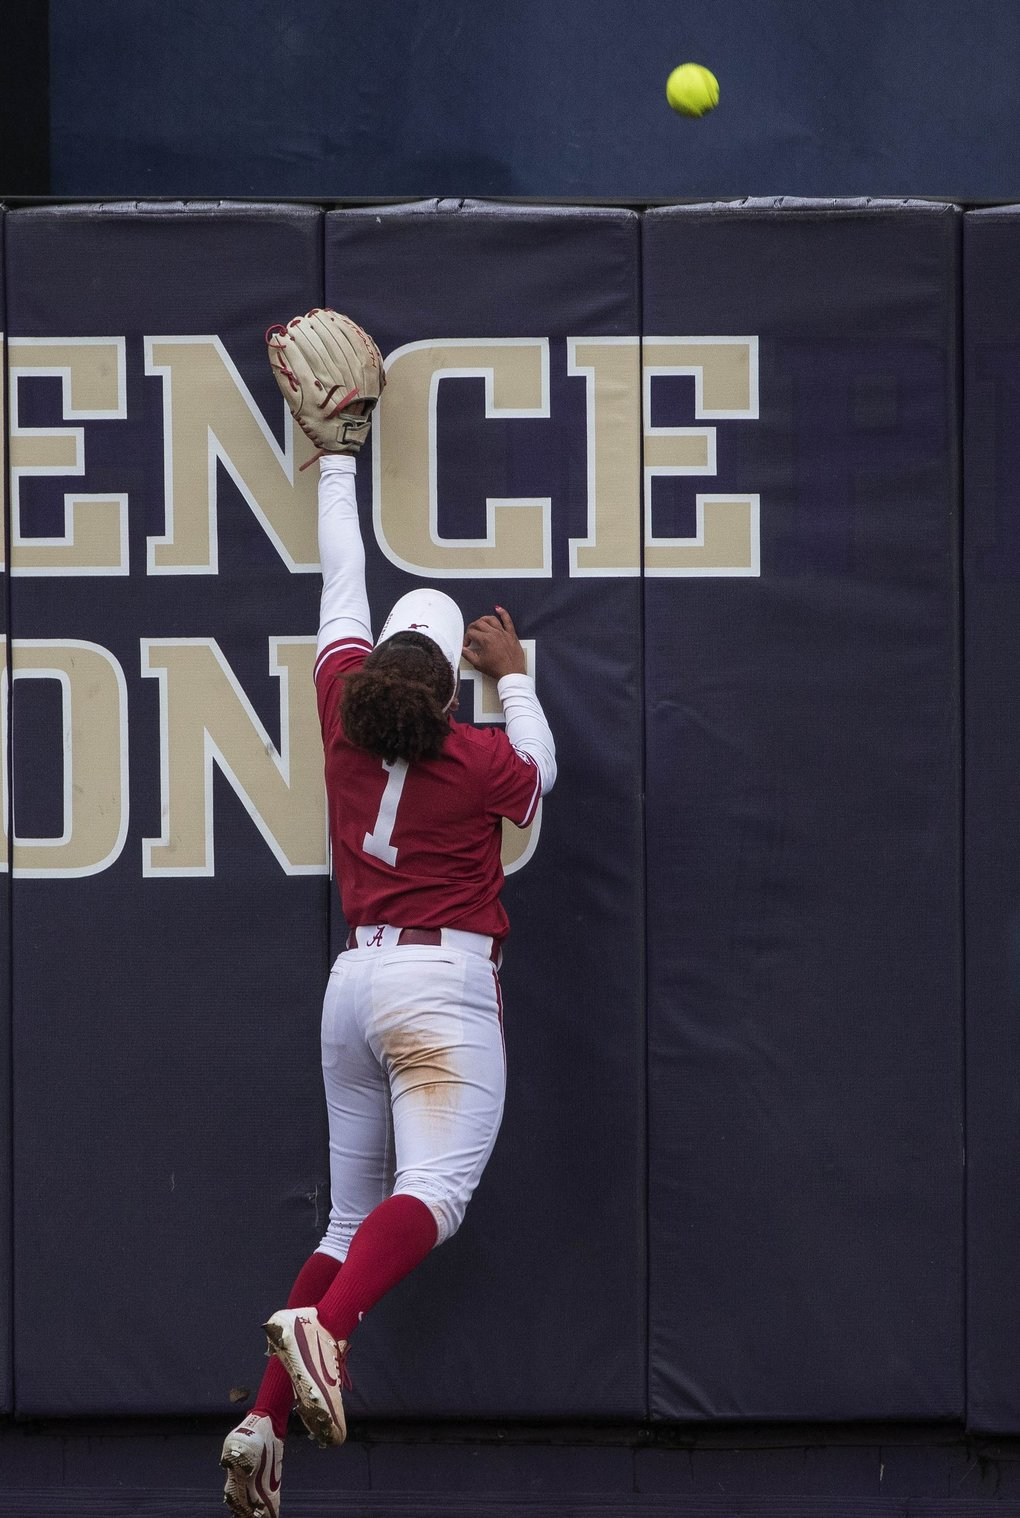 Alabama centerfielder Elissa Brown tries in vain to reel in the 2-run homer by Washington's Julia Deponte in the 1st inning Friday.  (Dean Rutz / The Seattle Times)